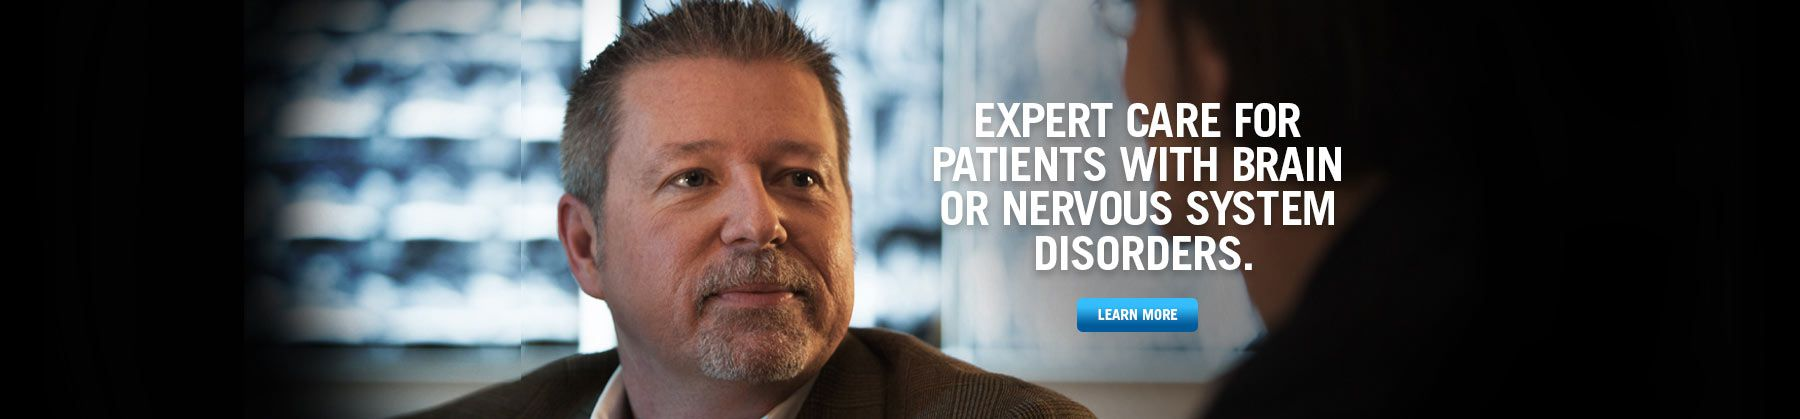 Expert Care for Patients with Brain or Nervous System Disorders